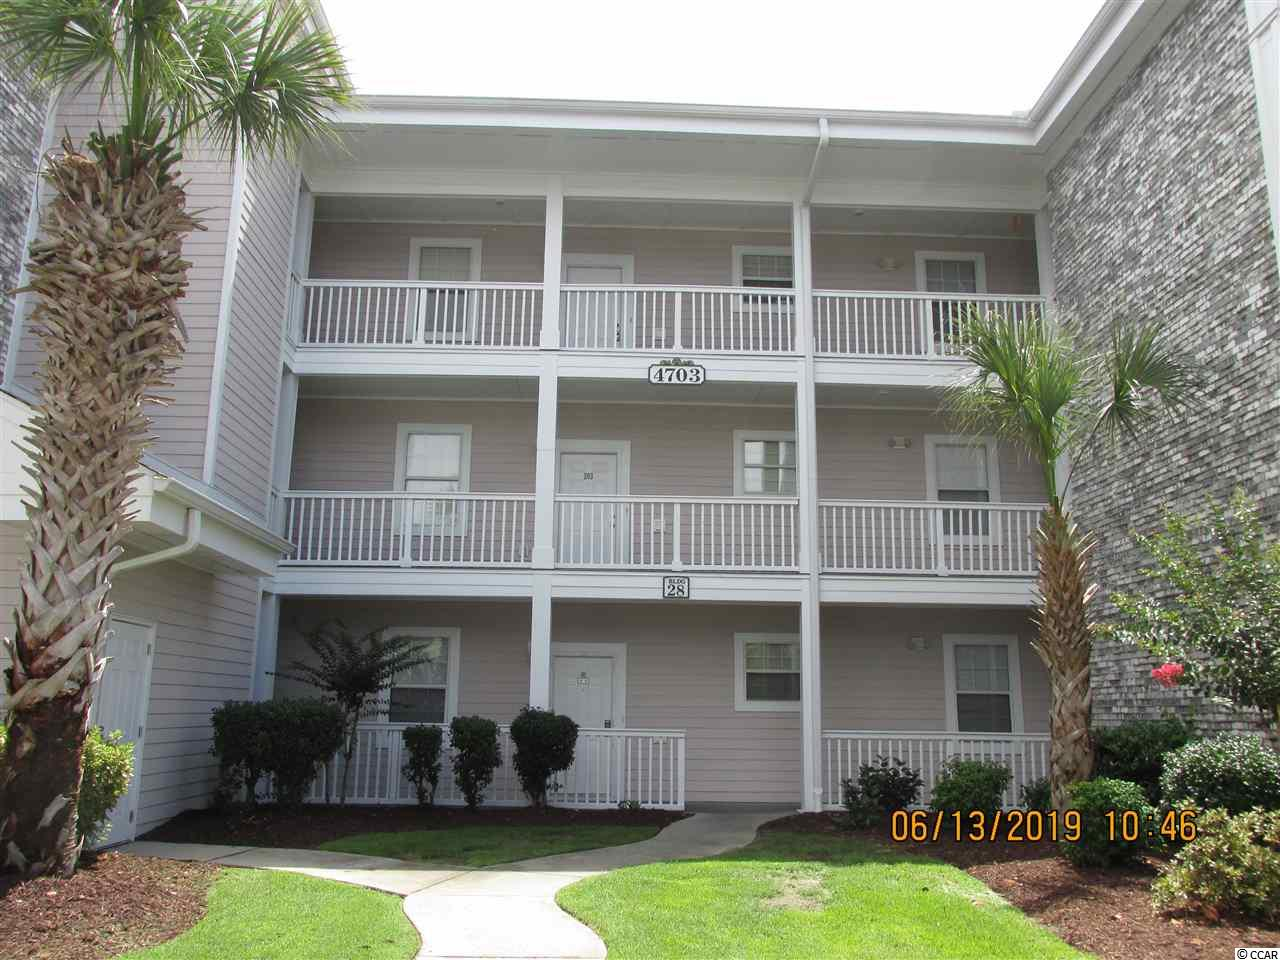 NICE FURNISHED 1 BEDROOM 1 BATH FIRST FLOOR UNIT LOTS OF LIGHT IN EXCELLENT CONDITION.CLOSE TO SHOPPING, BEACHES, RESTAURANTS, GOLF COURSE, BROADWAY AT BEACH. THIS CONDO IS GREAT FOR YEAR ROUND OR VACATION HOME.